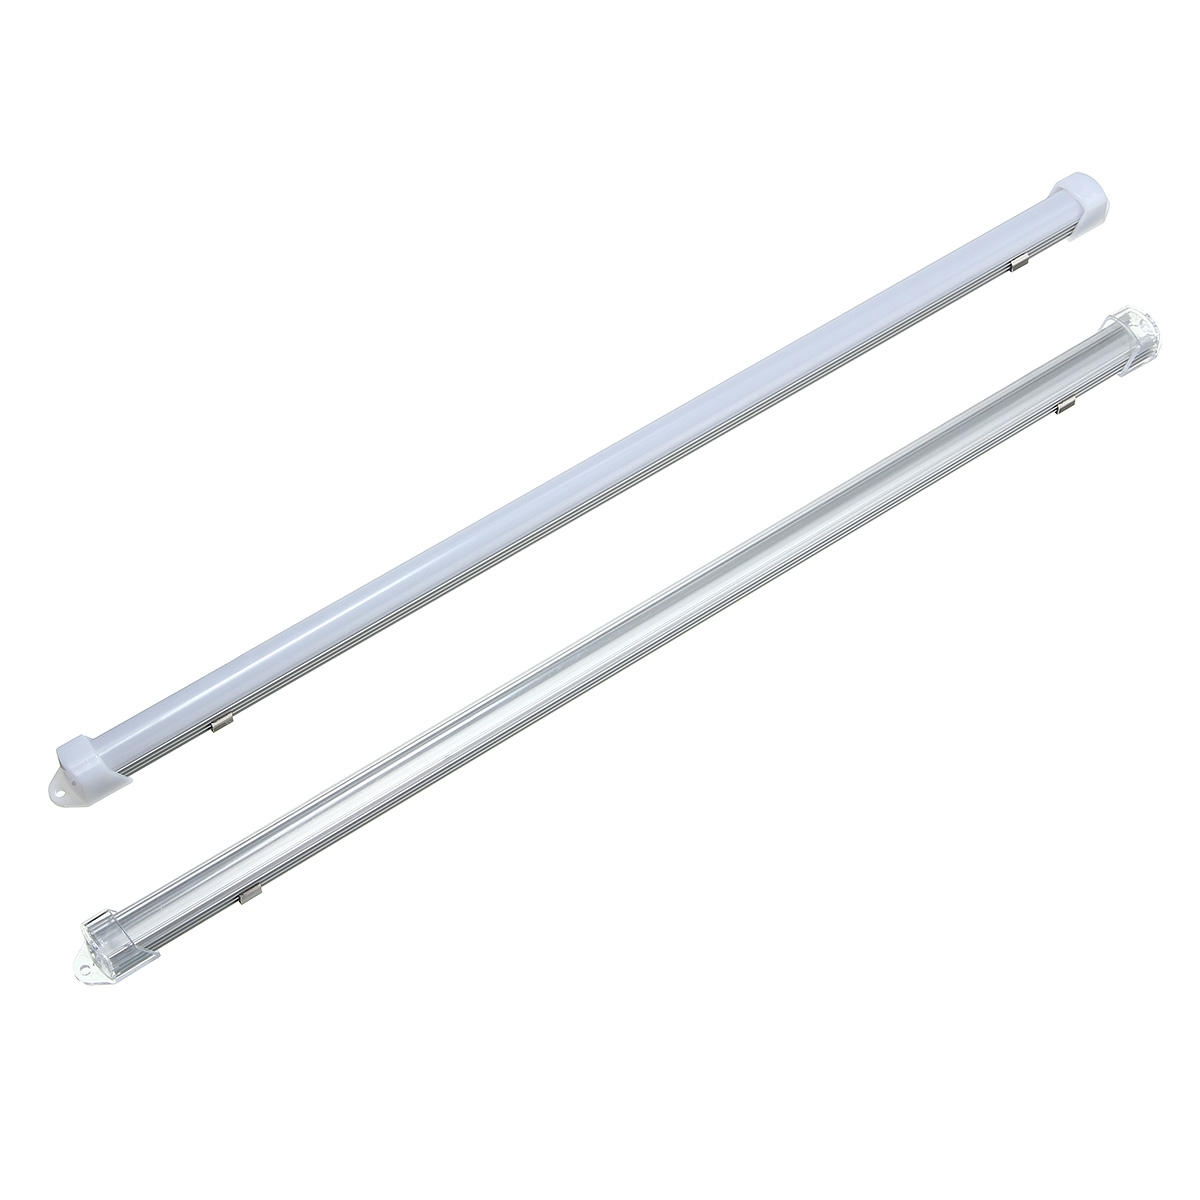 50cm Xh 062 U Style Aluminum Channel Holder For Led Strip Light Bar Under Cabinet Lamp Lighting within sizing 1200 X 1200